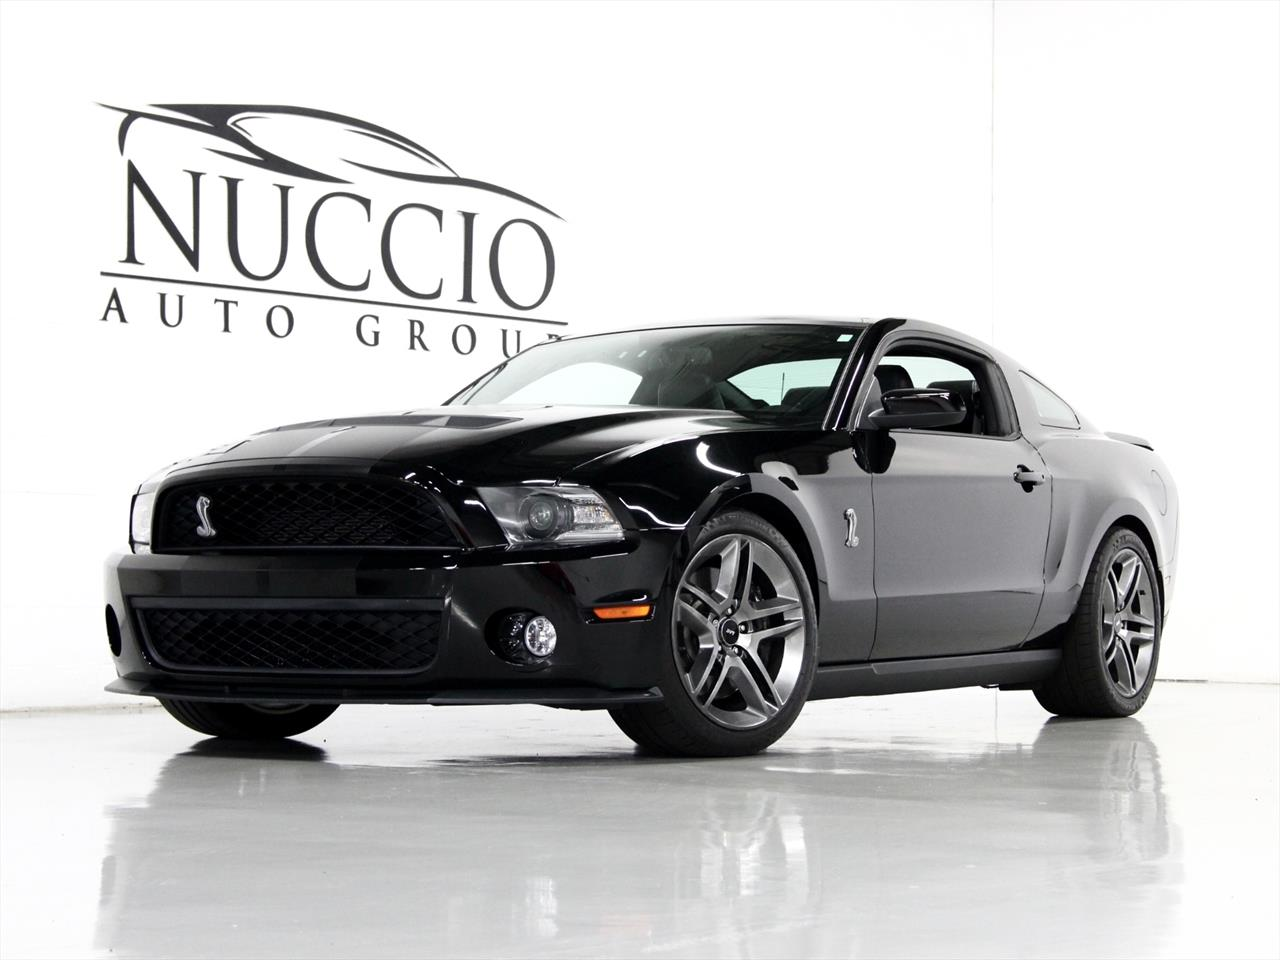 2012 Ford Mustang Shelby GT500 Coupe